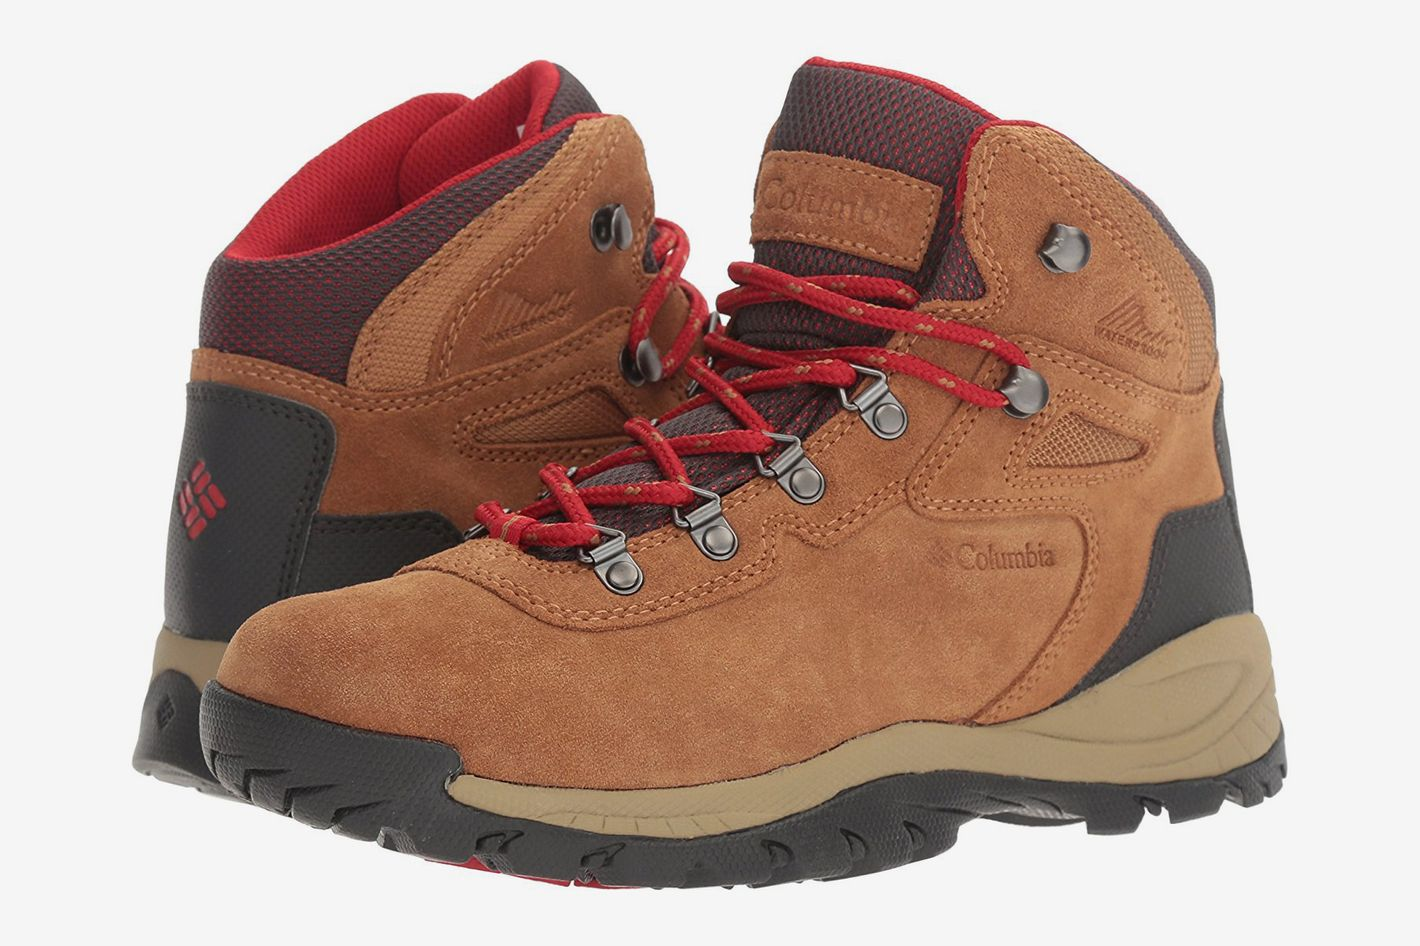 a0dbfd553dc Best waterproof women s hiking boots